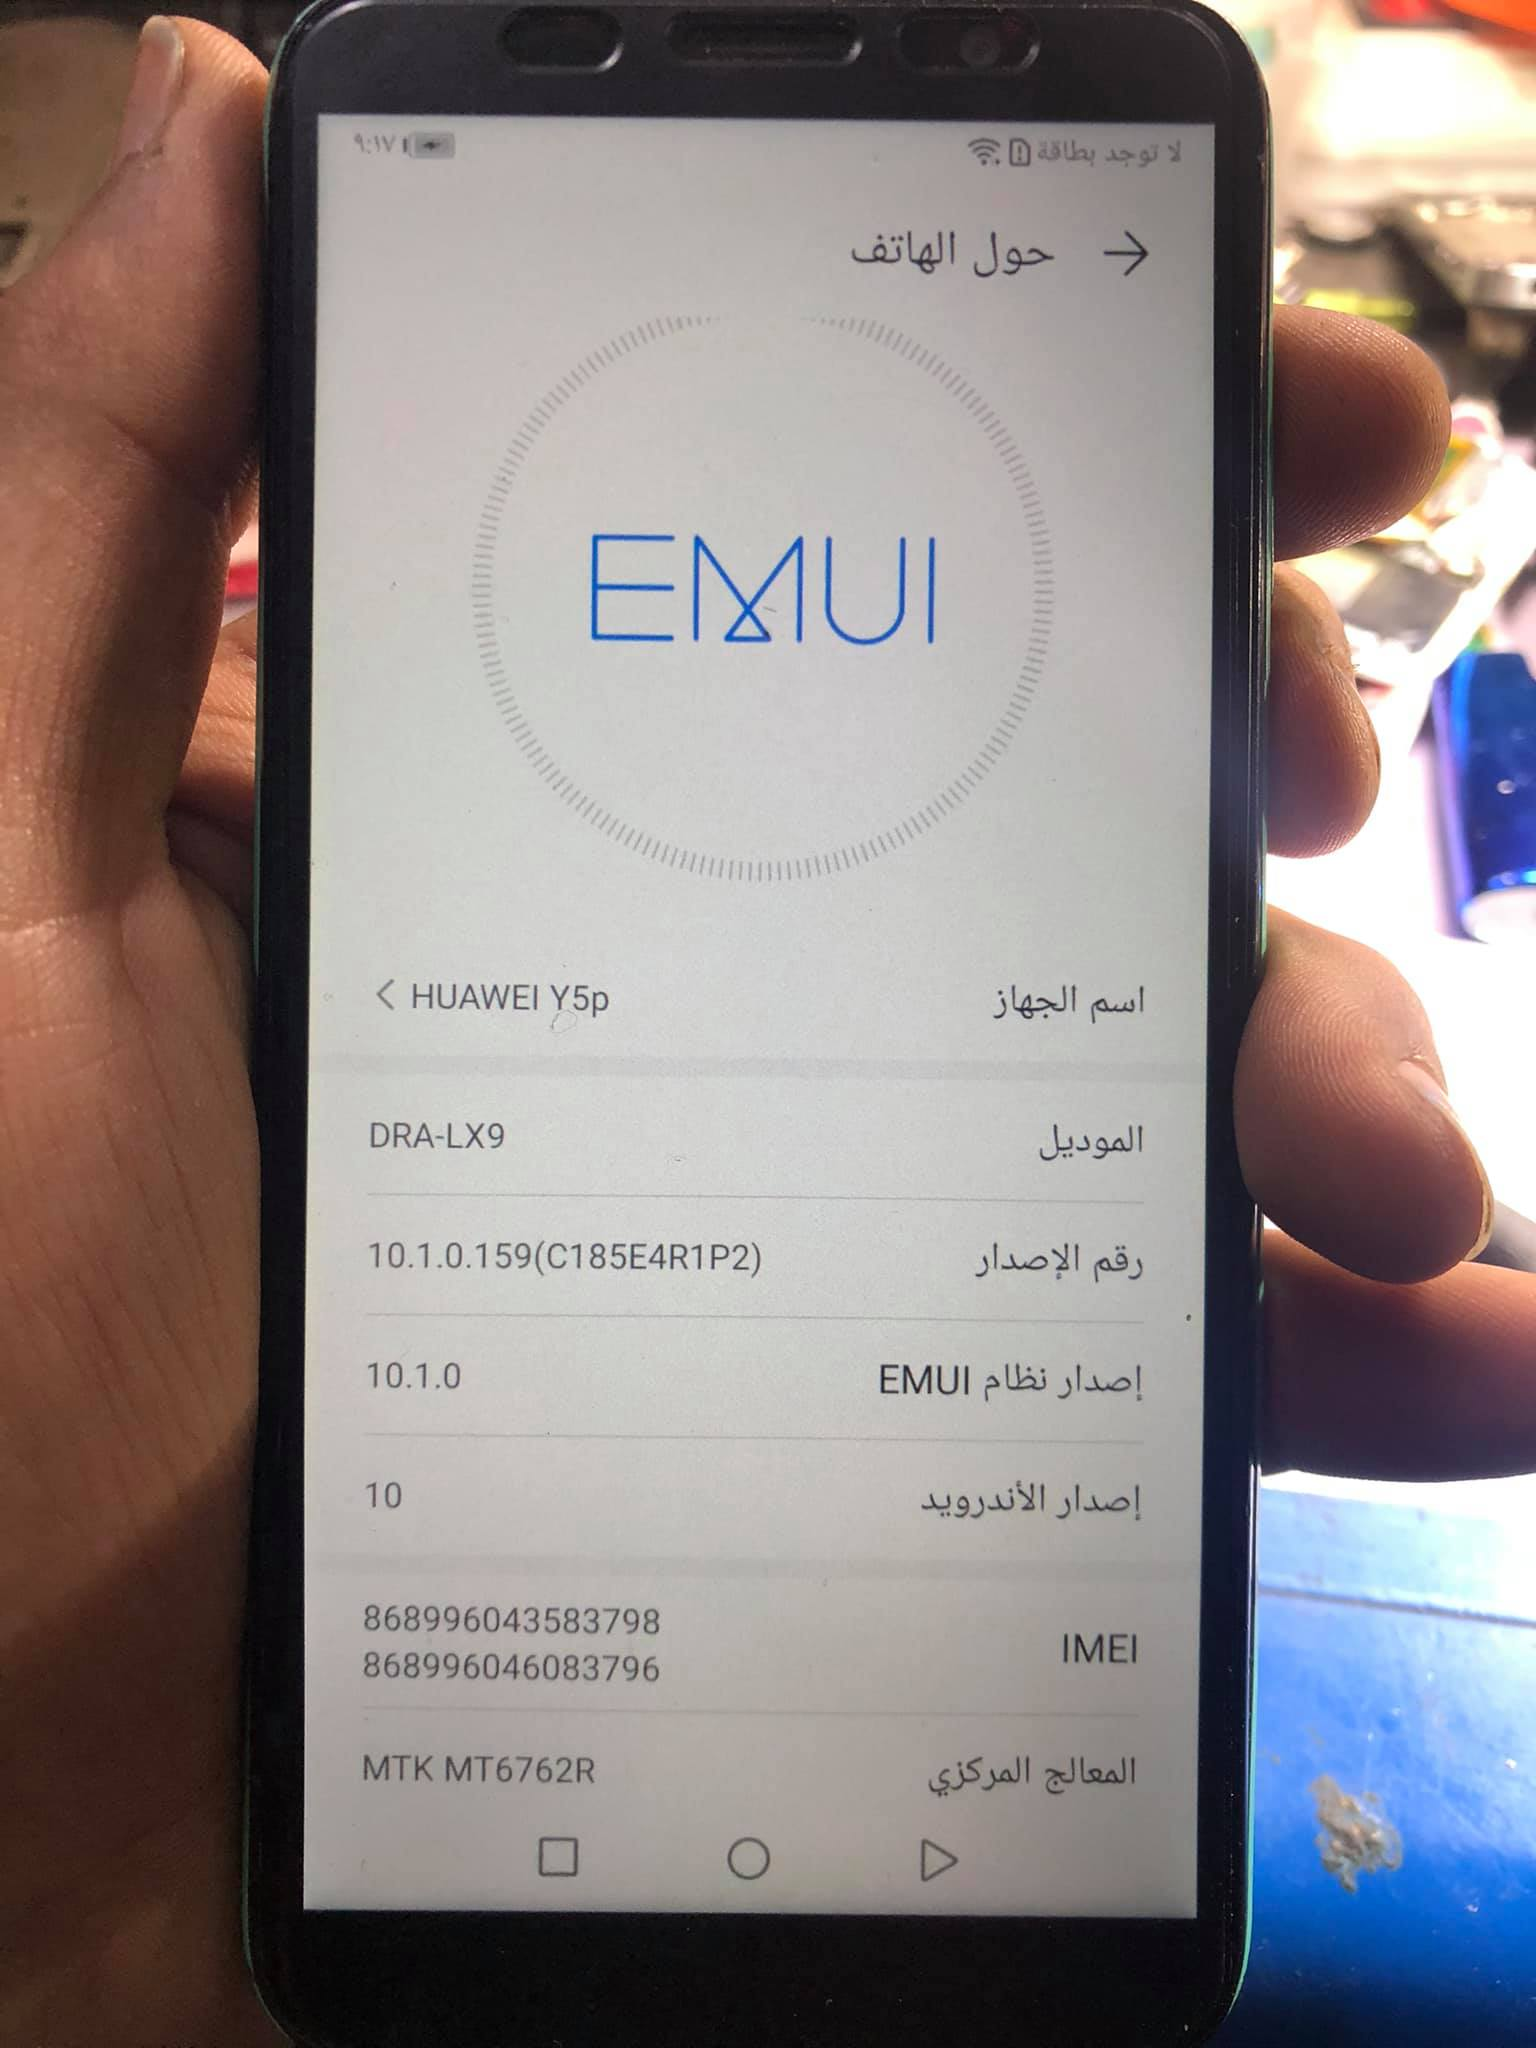 How to bypass Huawei ID on Huawei DRA-LX9